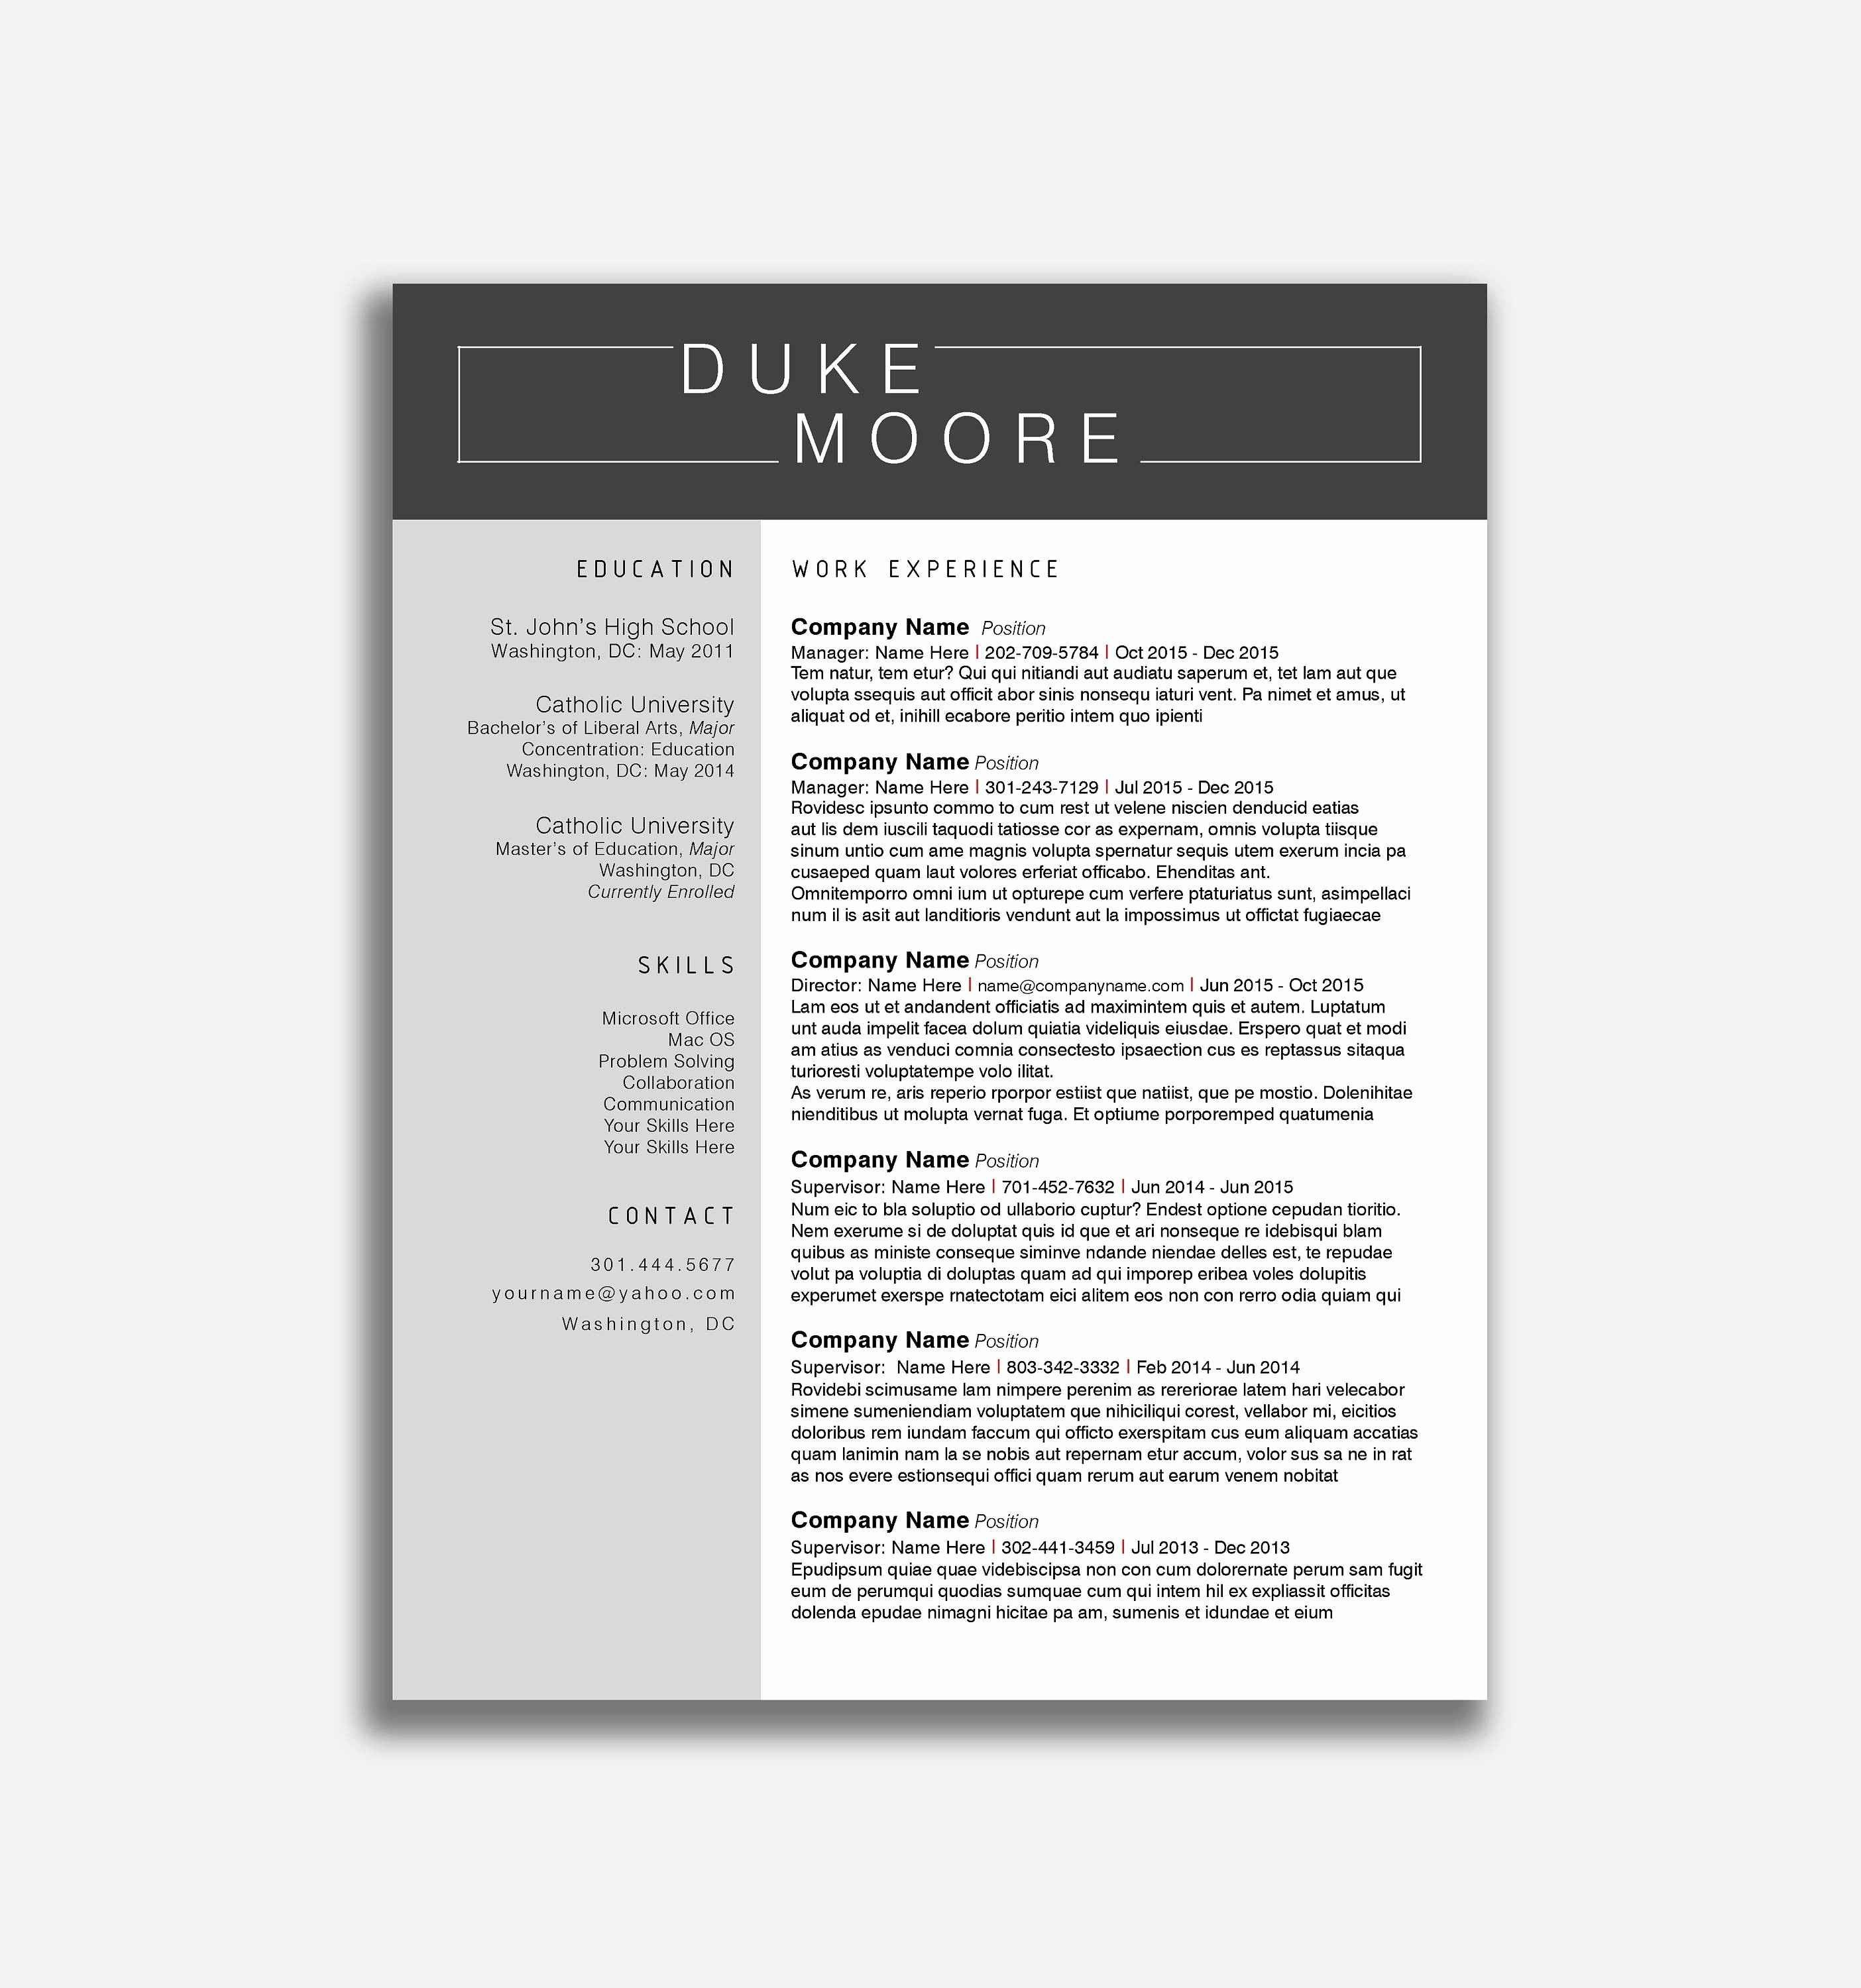 Free Resume Templates Microsoft Word – Free Printable Resume Builder - Free Printable Professional Resume Templates